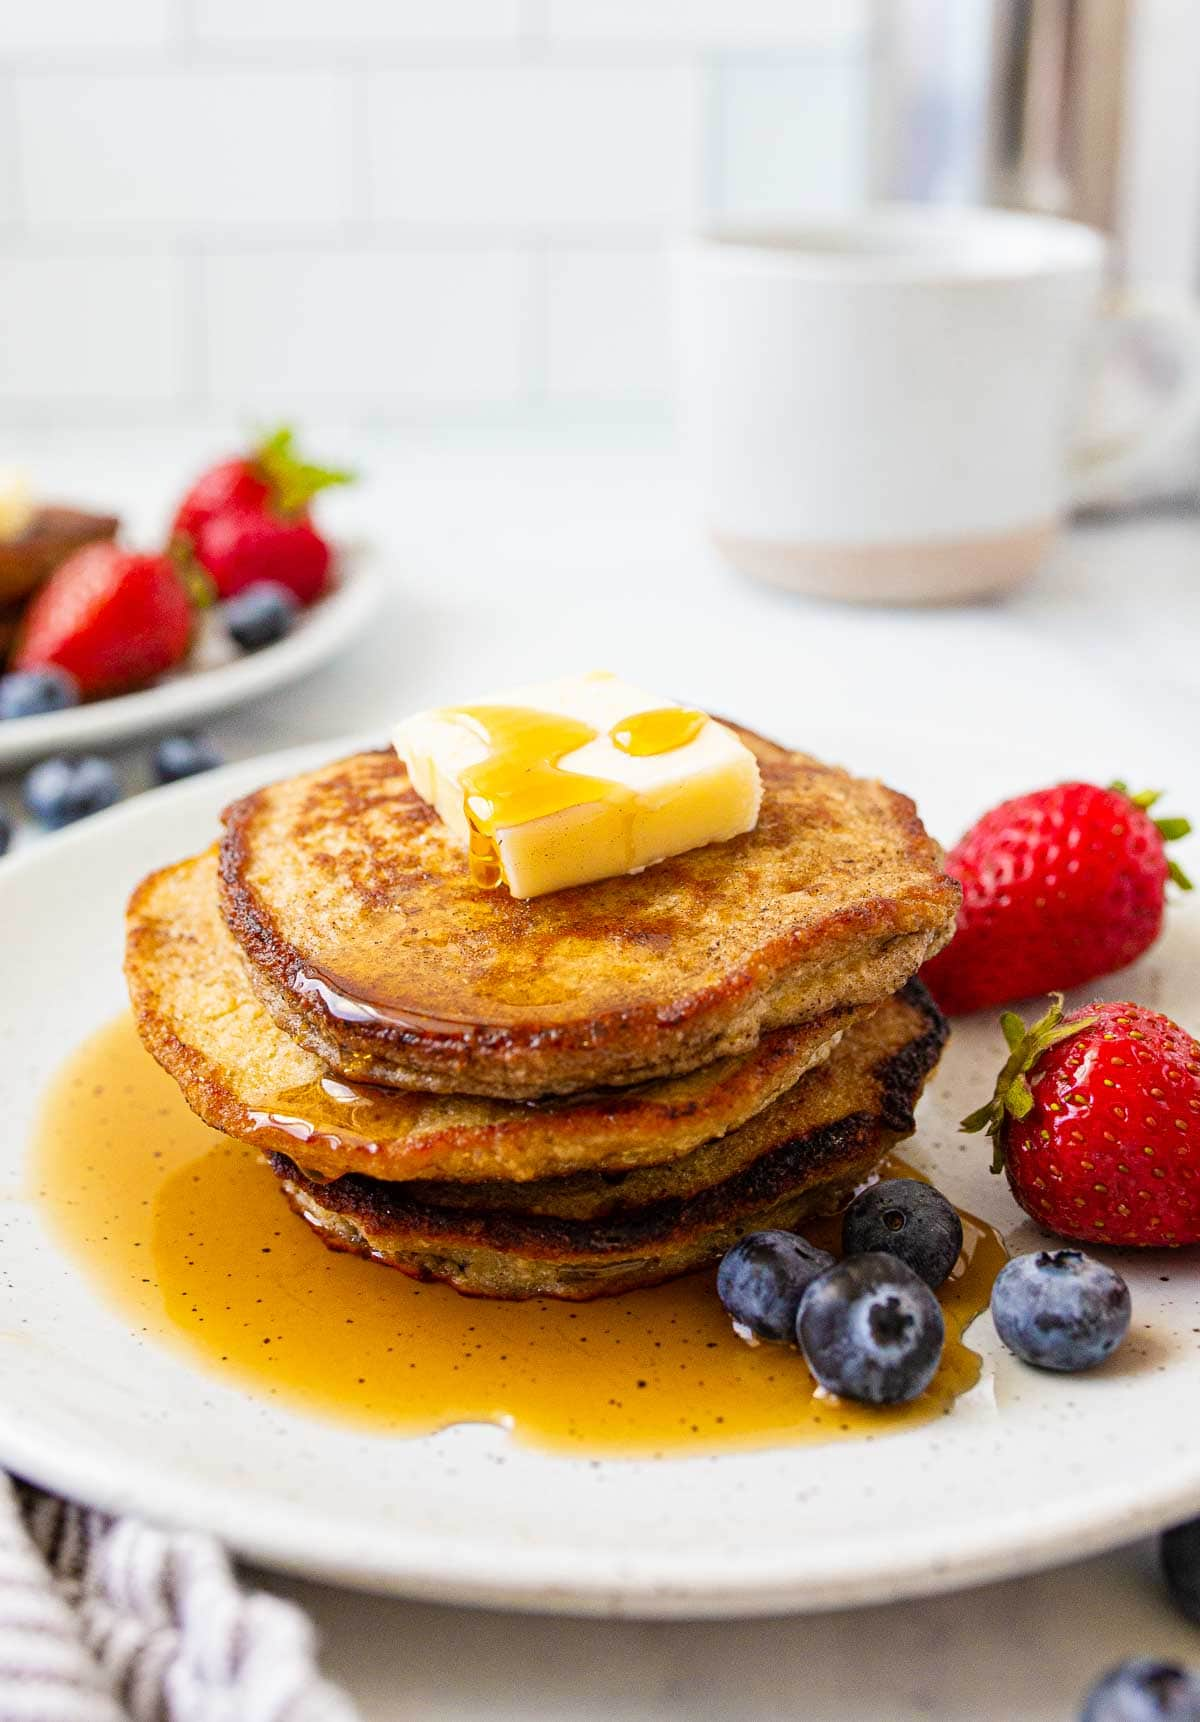 Stack of pancakes with butter and maple syrup on top.